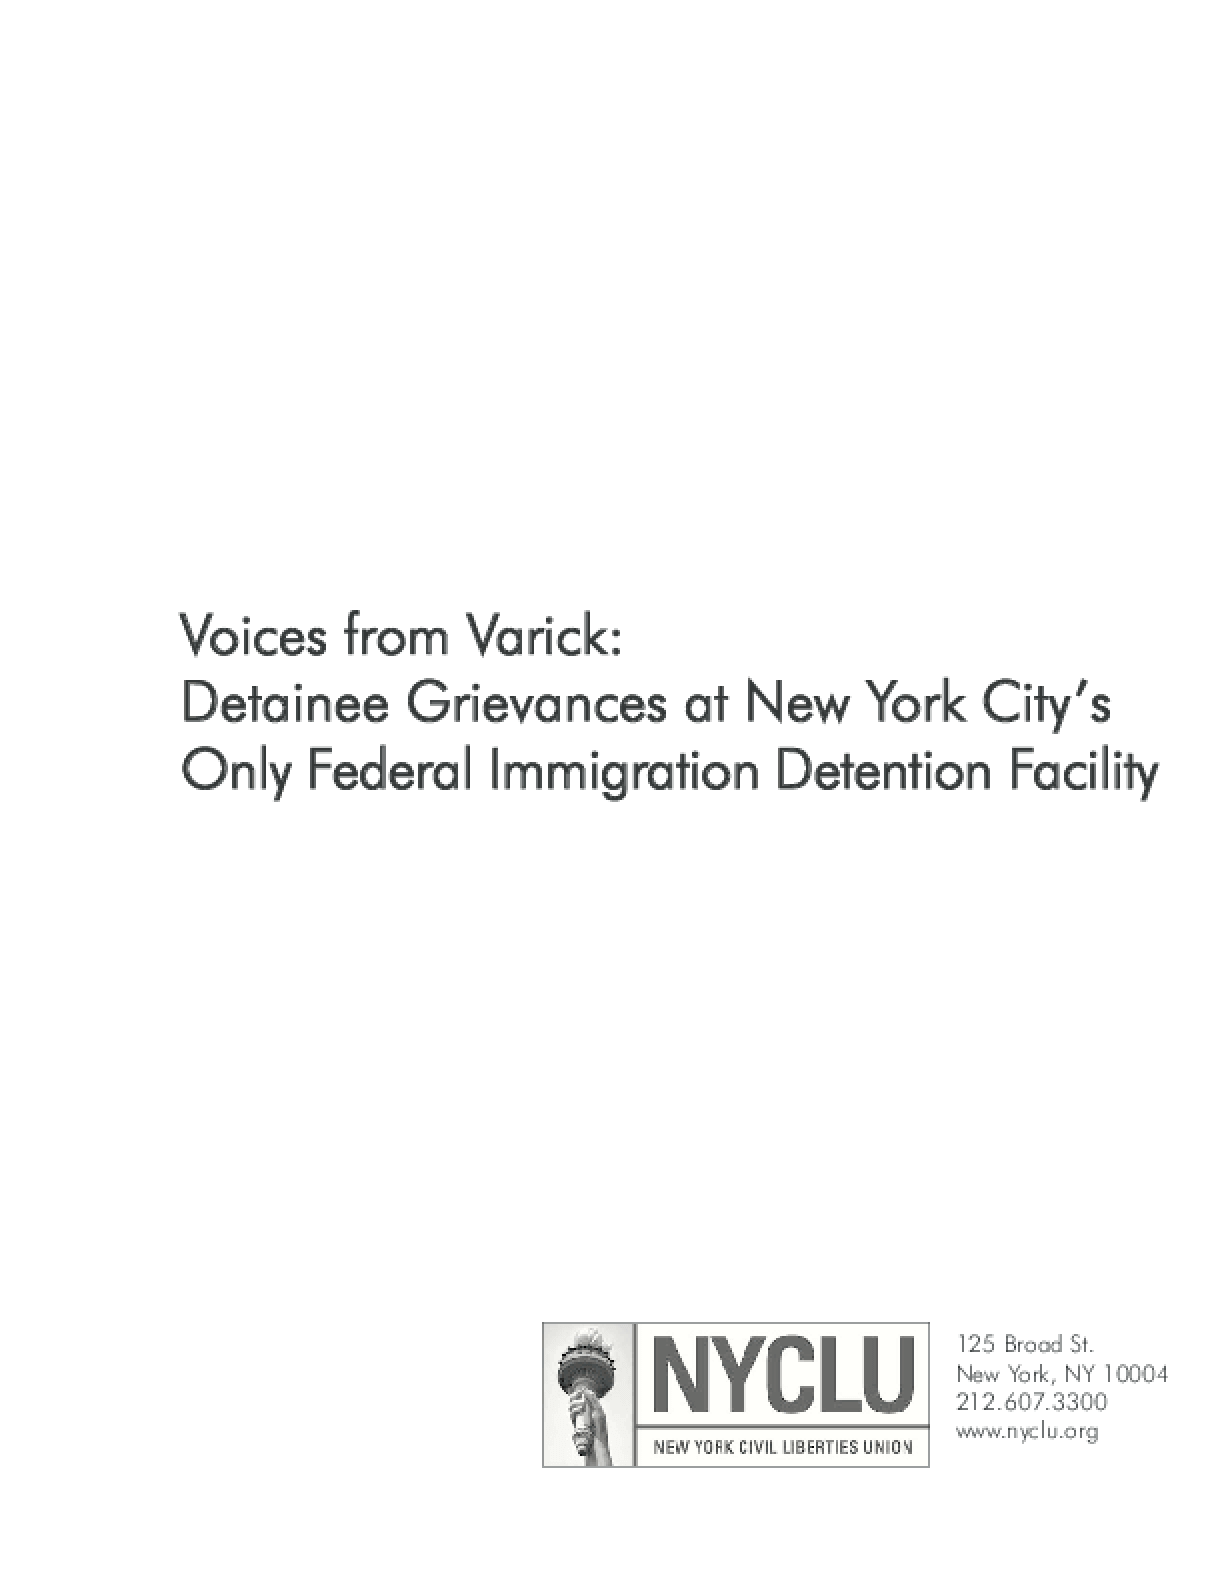 Voices from Varick: Detainee Grievances at New York City's Only Federal Immigration Detention Facility